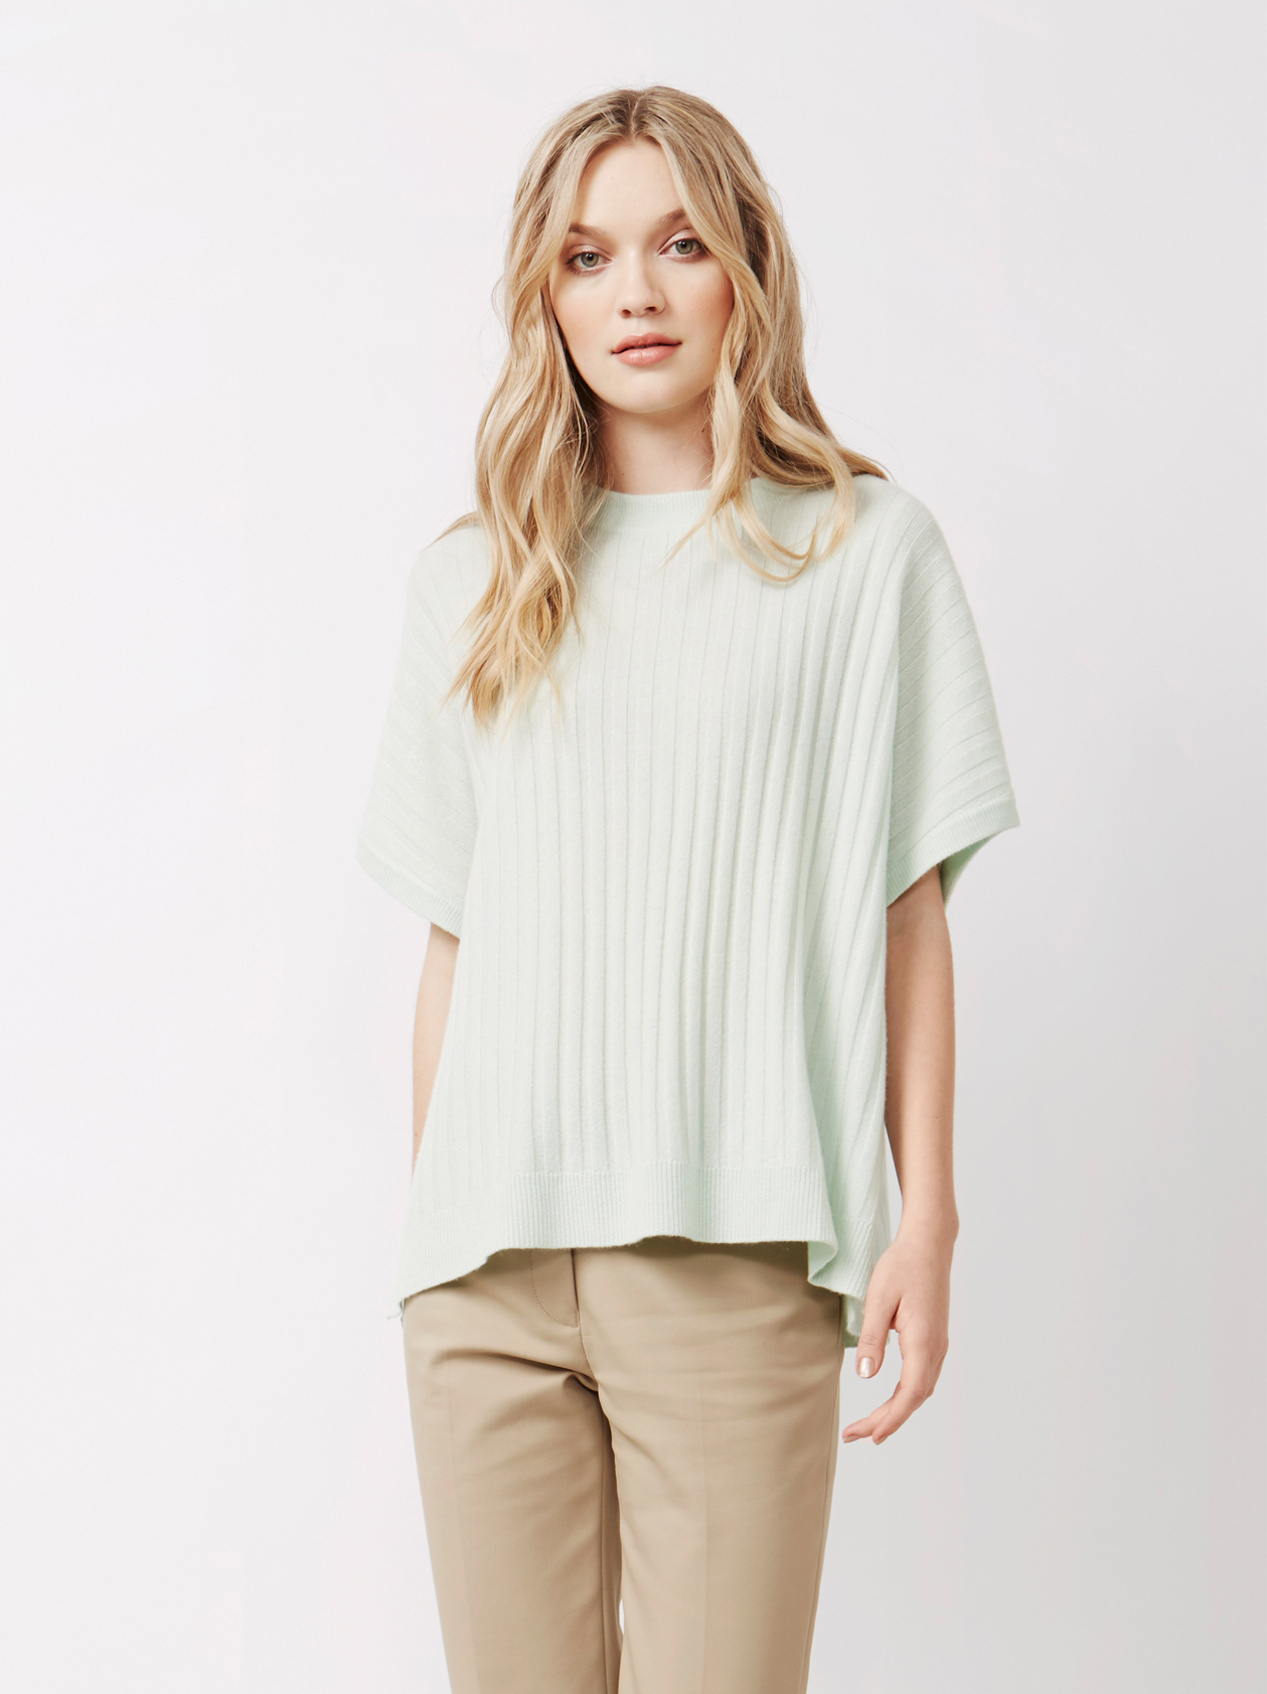 Soft Goat Women's Ribbed Poncho Sorbet Mint